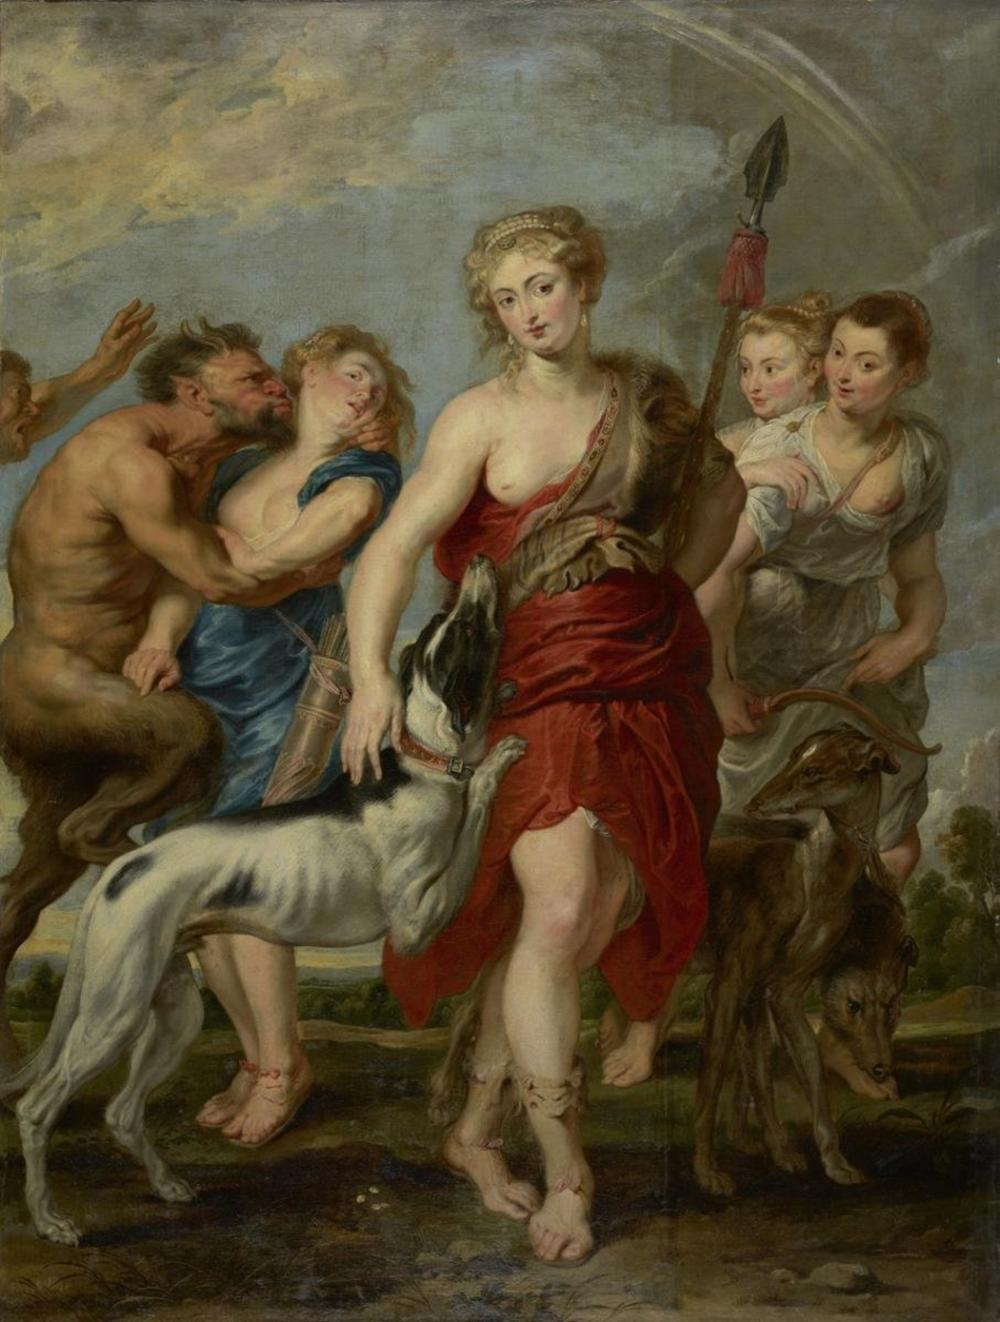 WORKSHOP OF PETER PAUL RUBENS - DIANA AND HER NYMPHS ON THE HUNT